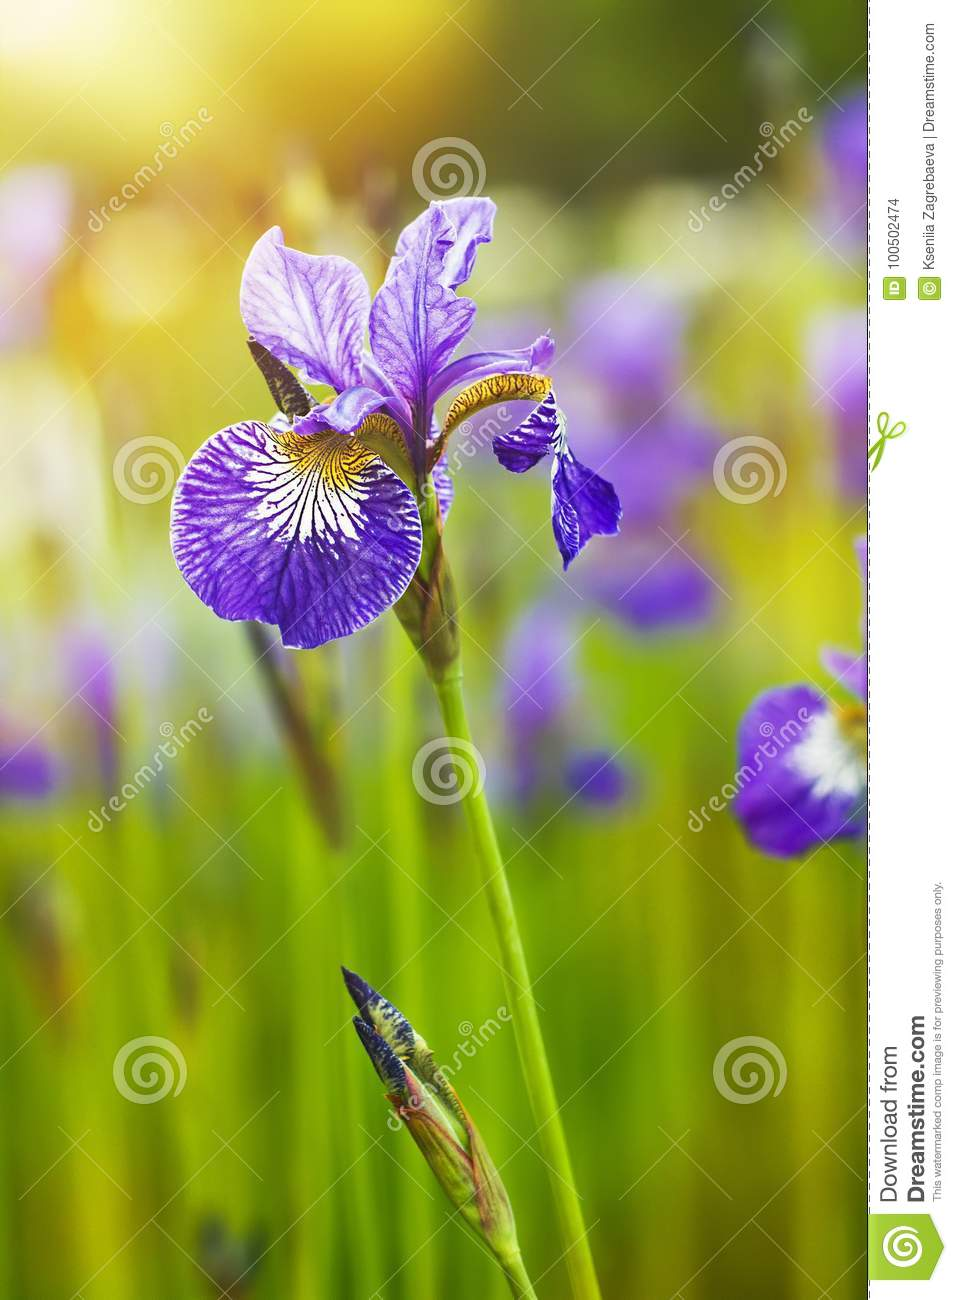 Lilac Flowers Irises Grow In The Garden Stock Photo Image Of Iris